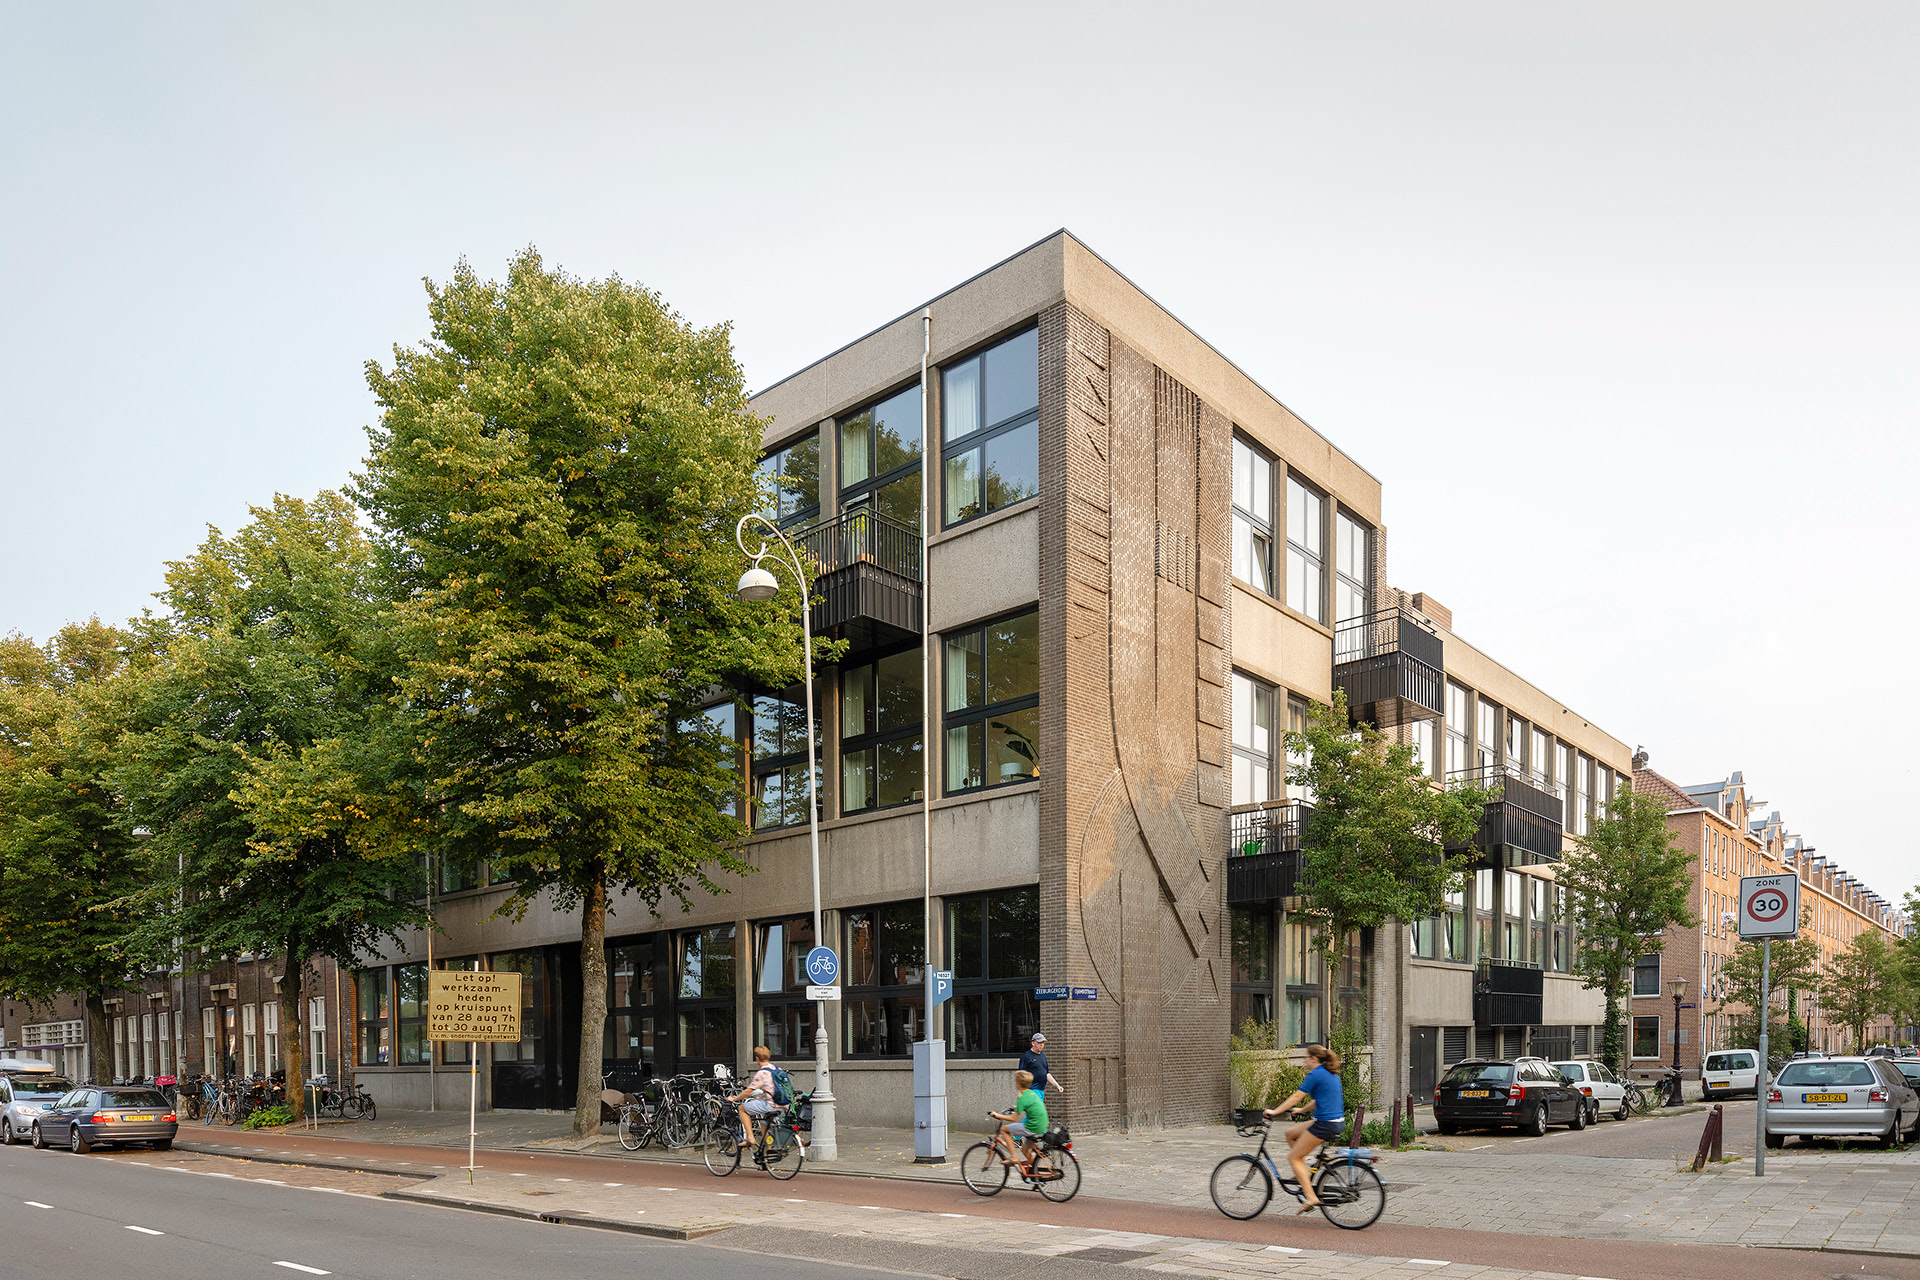 ZEE Smartlofts is about honouring the old while celebrating the new; it's about connecting self-expression and community. In collaboration with a building group composed of fourteen households, we transformed the Oude Modeschool, a former fashion school building in the east of Amsterdam, into twenty-five Smartloft apartments. While the infill of each of these apartments is unique, designed by the people living in them, residents are connected via shared spaces they helped design.